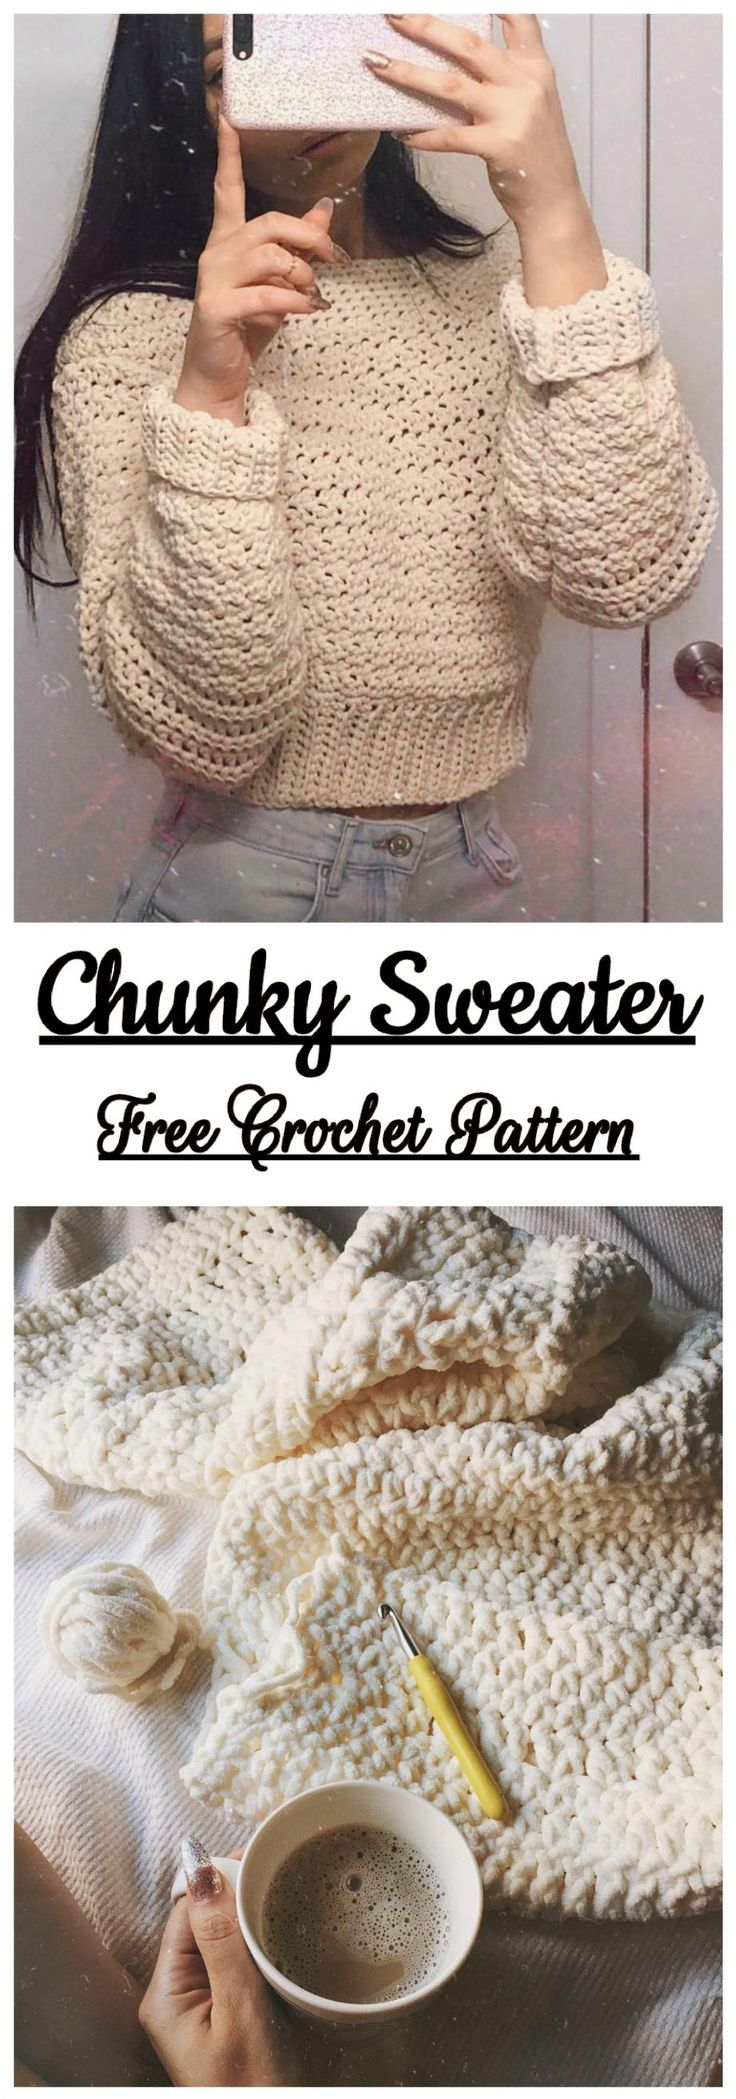 Chunky Sweater Free Crochet Pattern